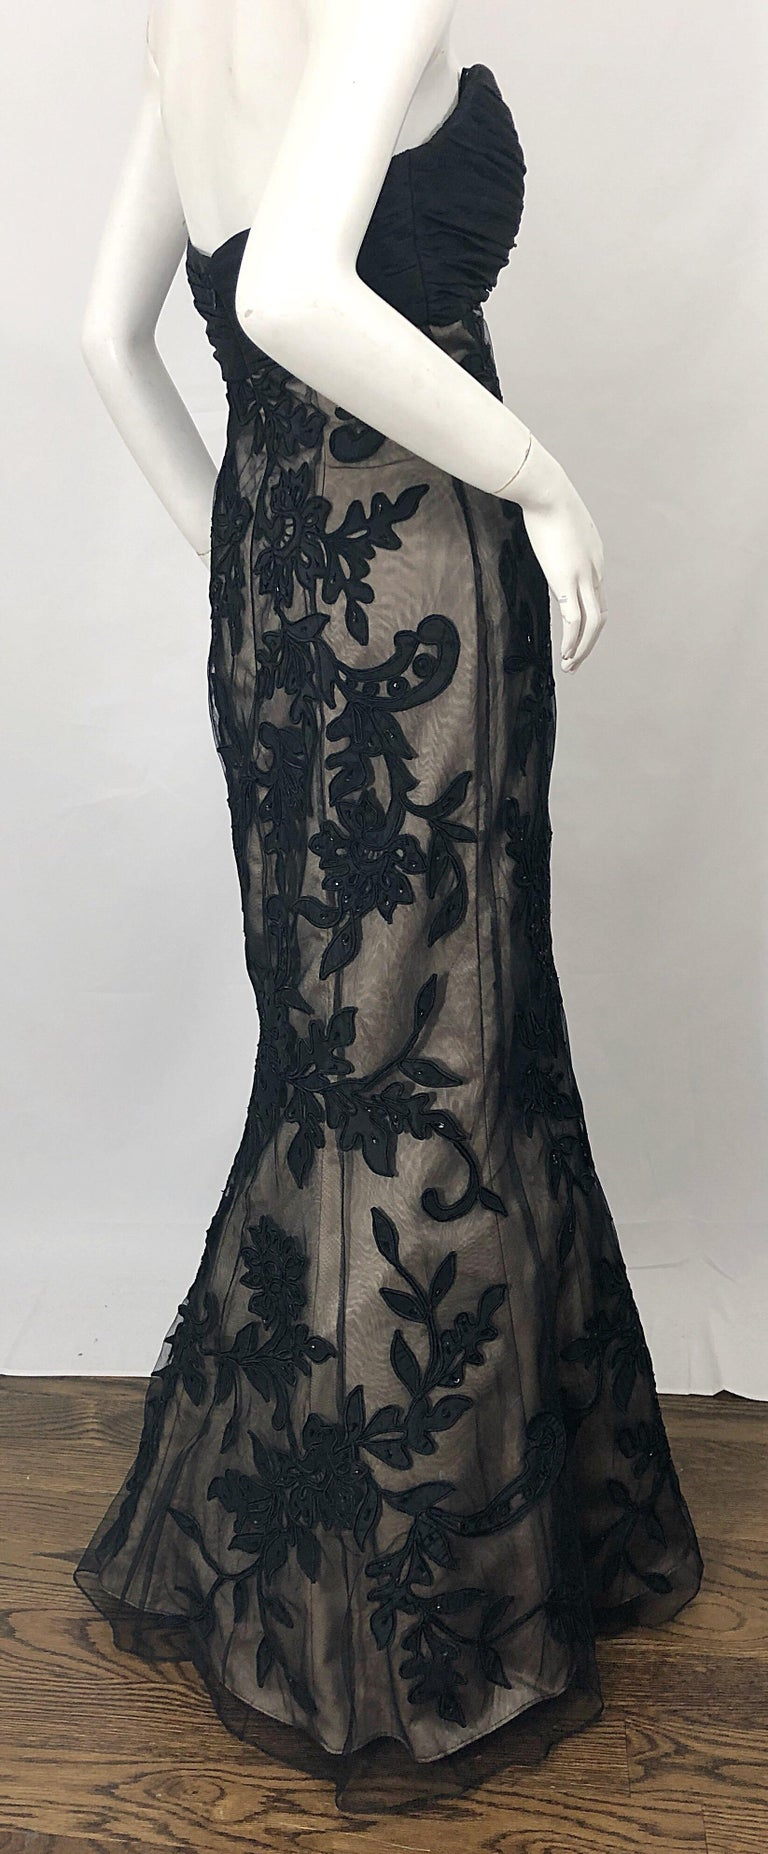 Vintage Bill Blass Couture Size 4 / 6 Black + Nude Beaded Strapless Mermaid Gown For Sale 1